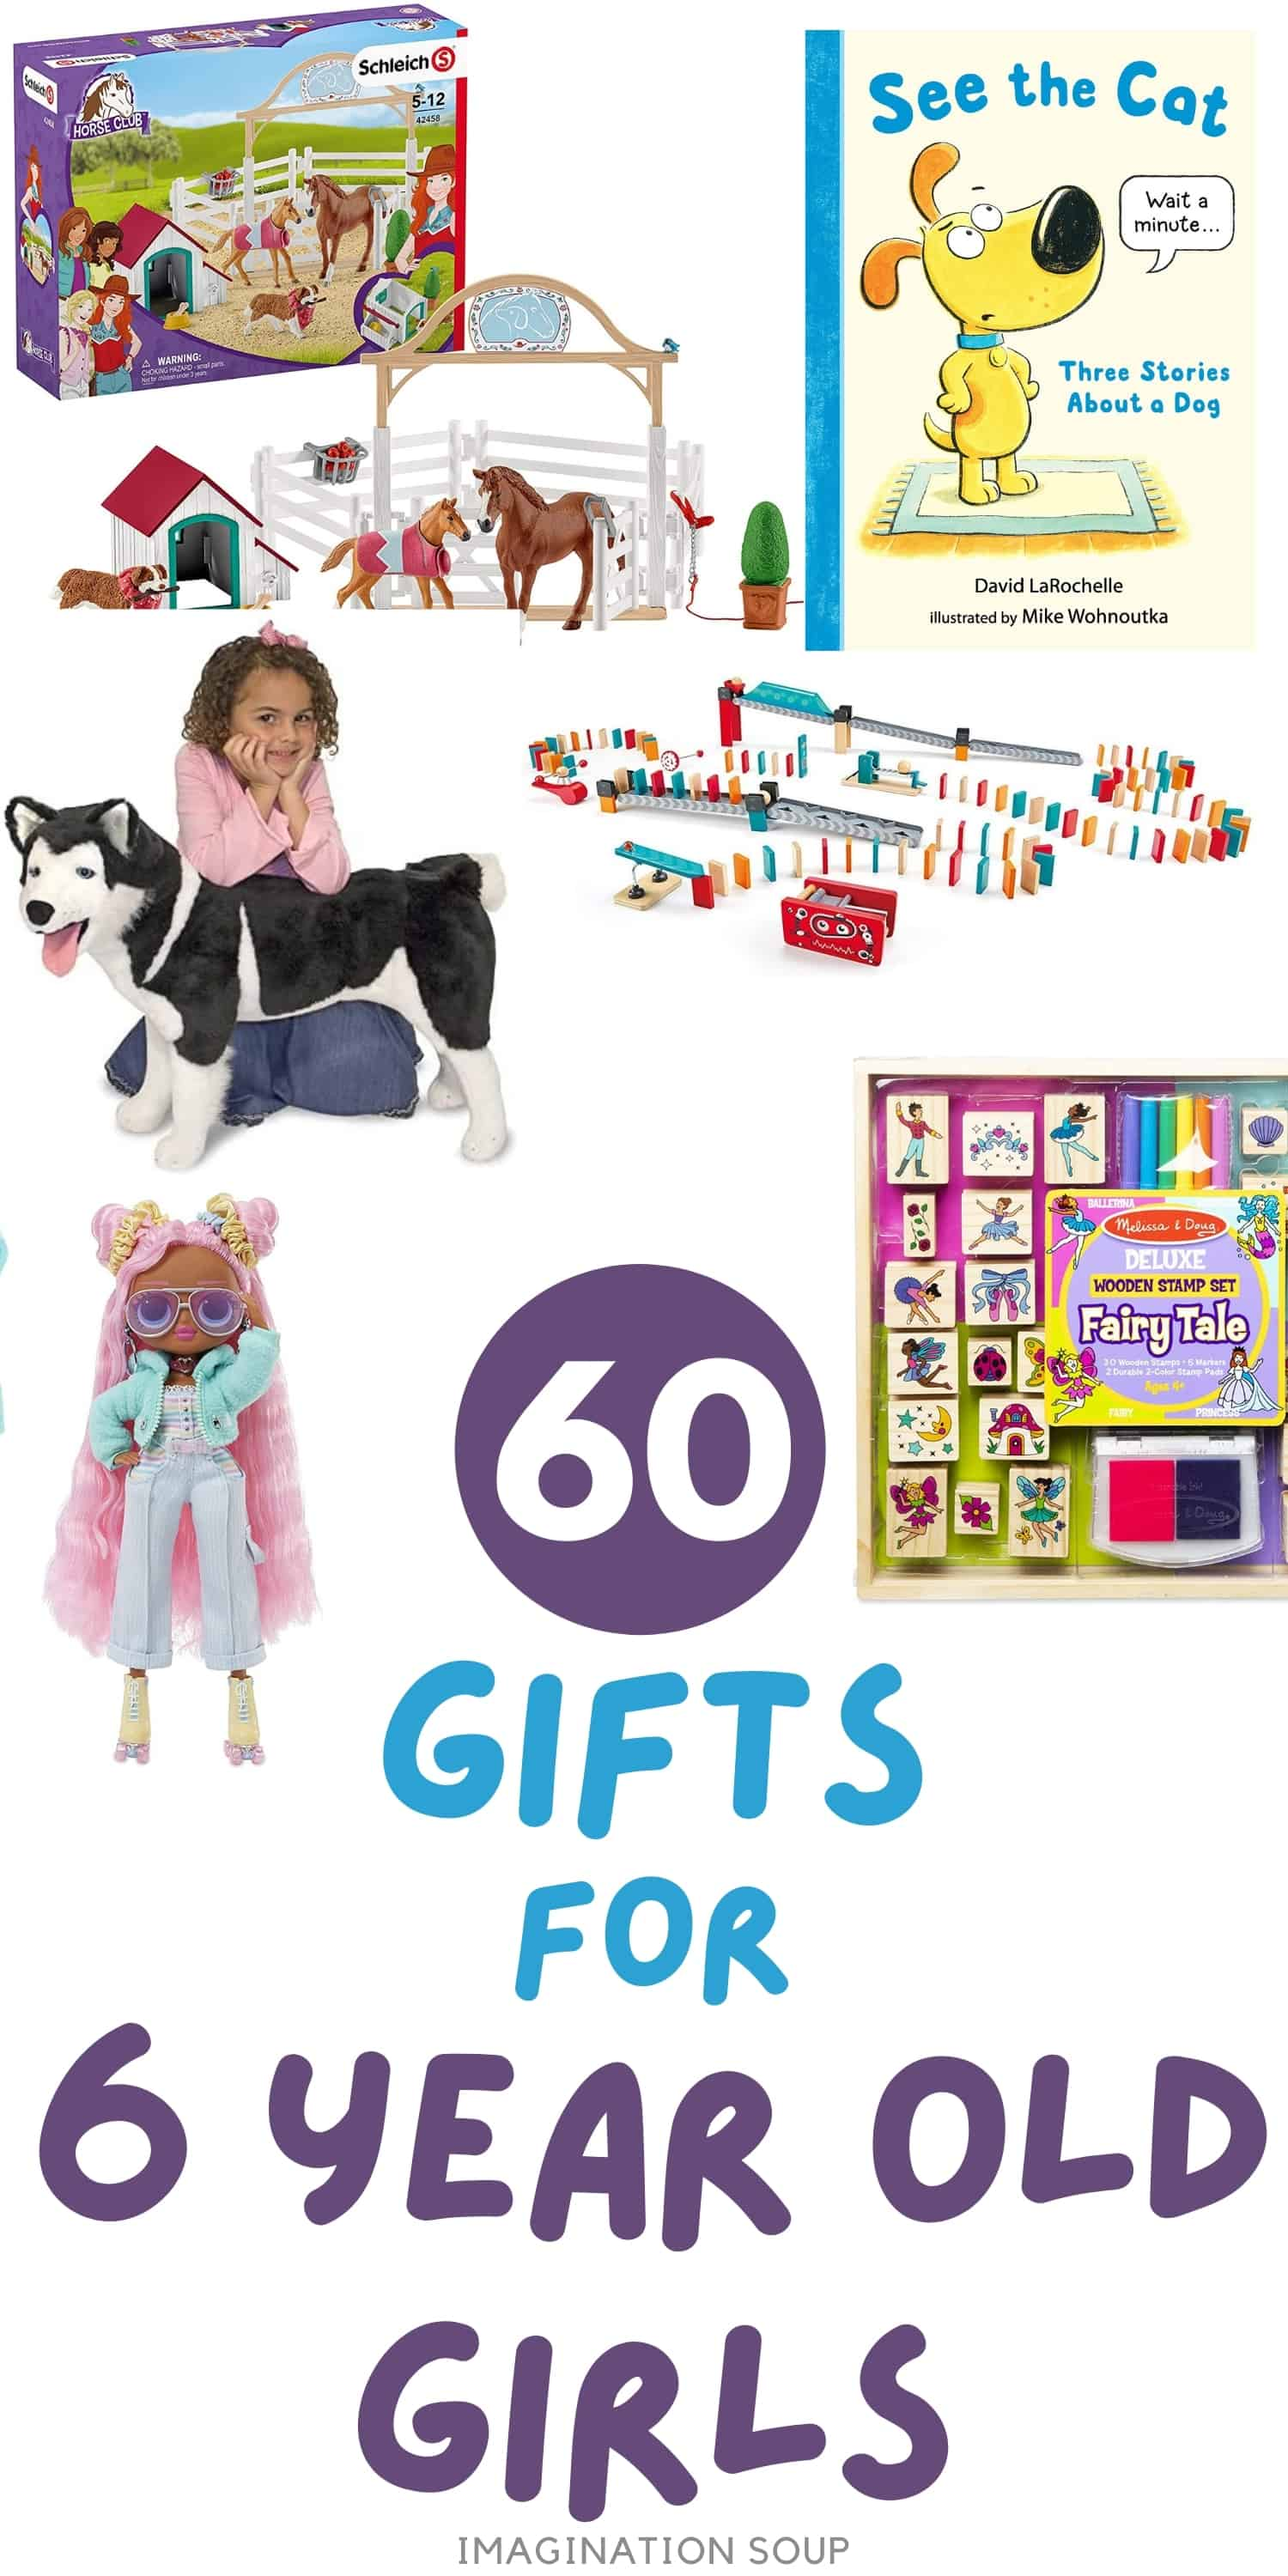 creative toys and gifts for 6 year old girls